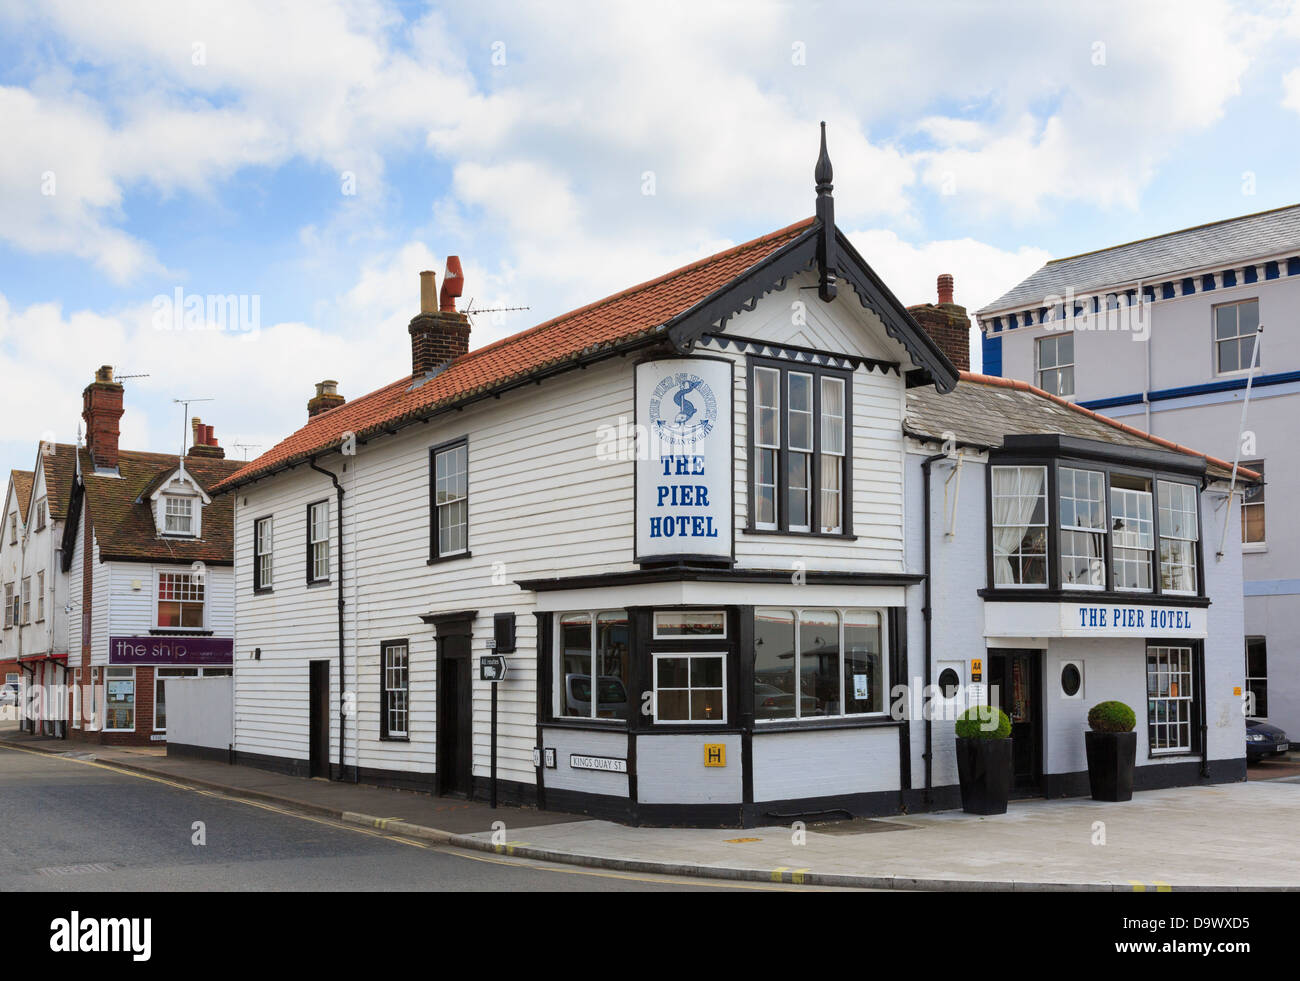 The Pier Hotel on corner of Kings Quay Street and The Quay in east coast town of Harwich, Essex, England, UK, Britain - Stock Image